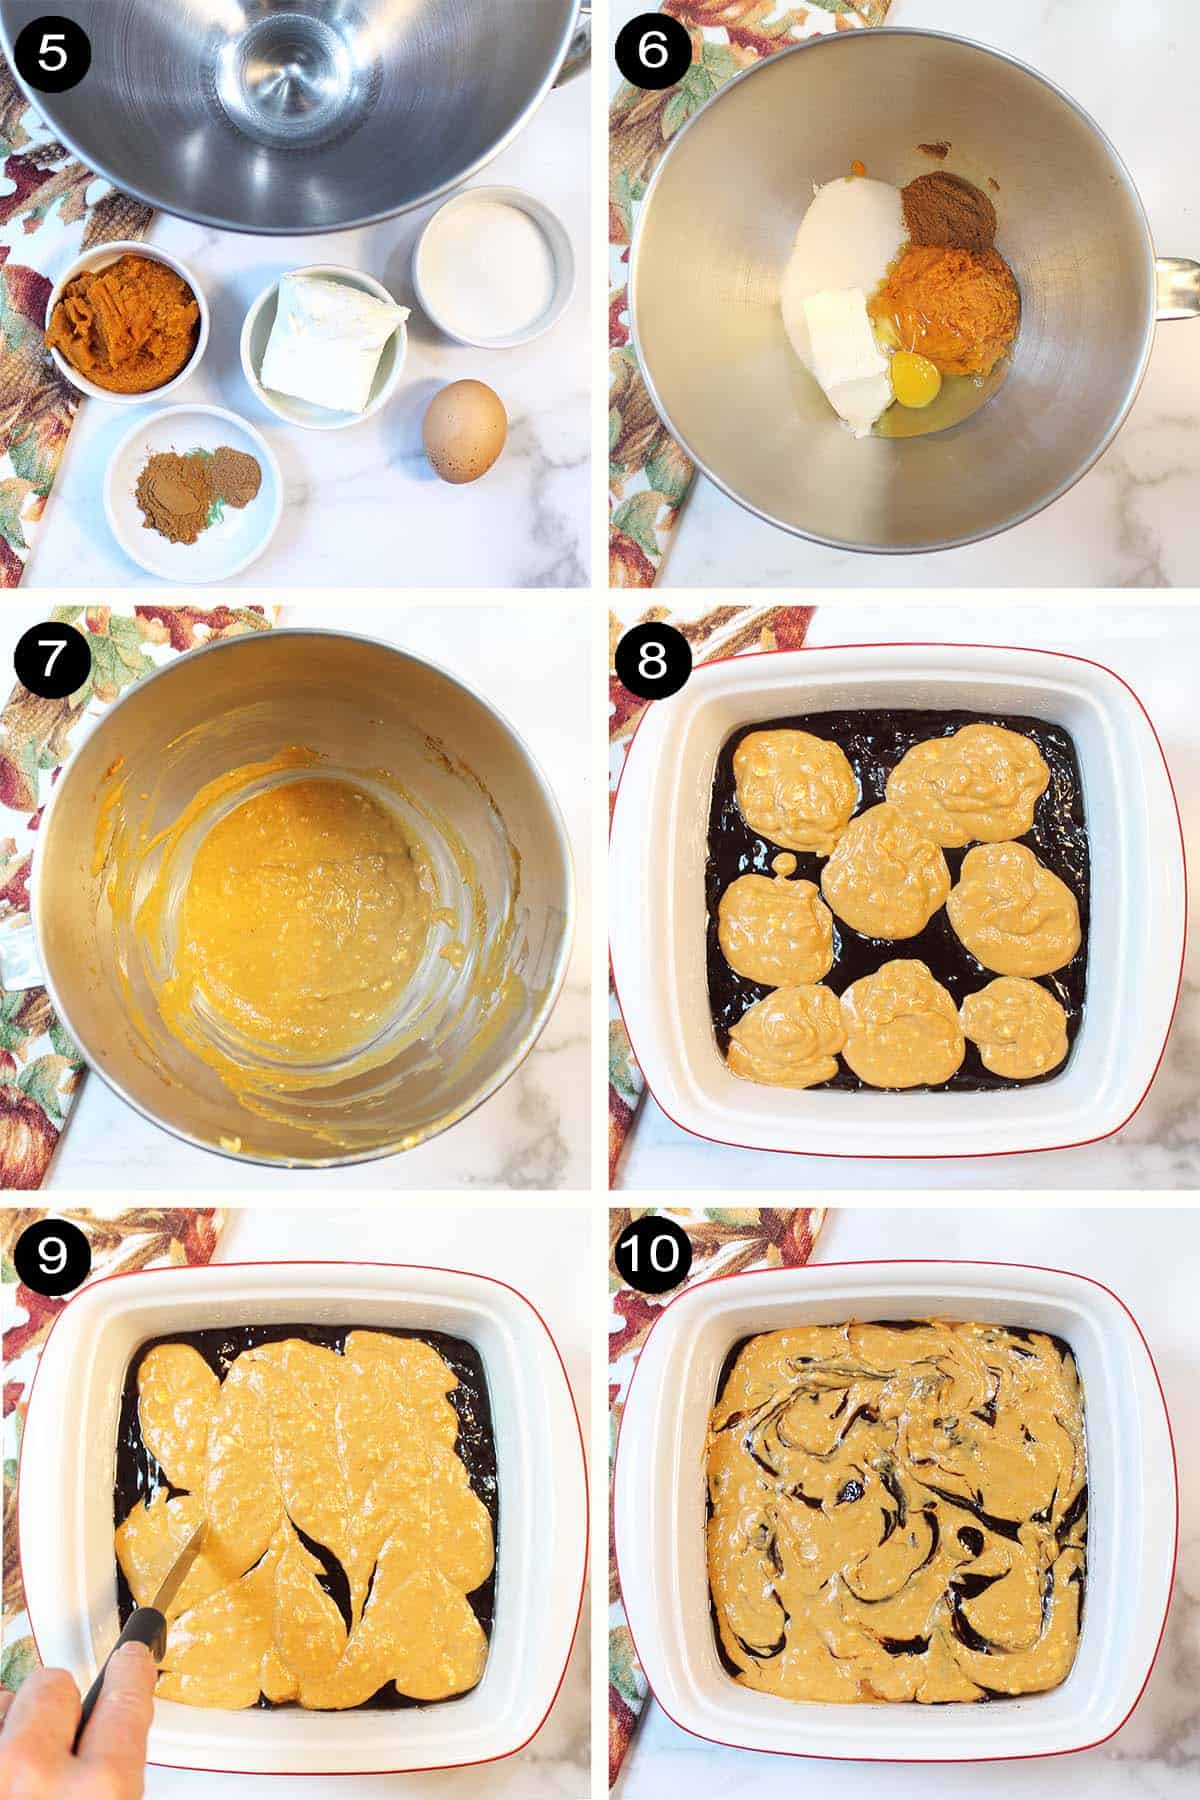 Prep steps for pumpkin cheesecake and swirling into brownies.